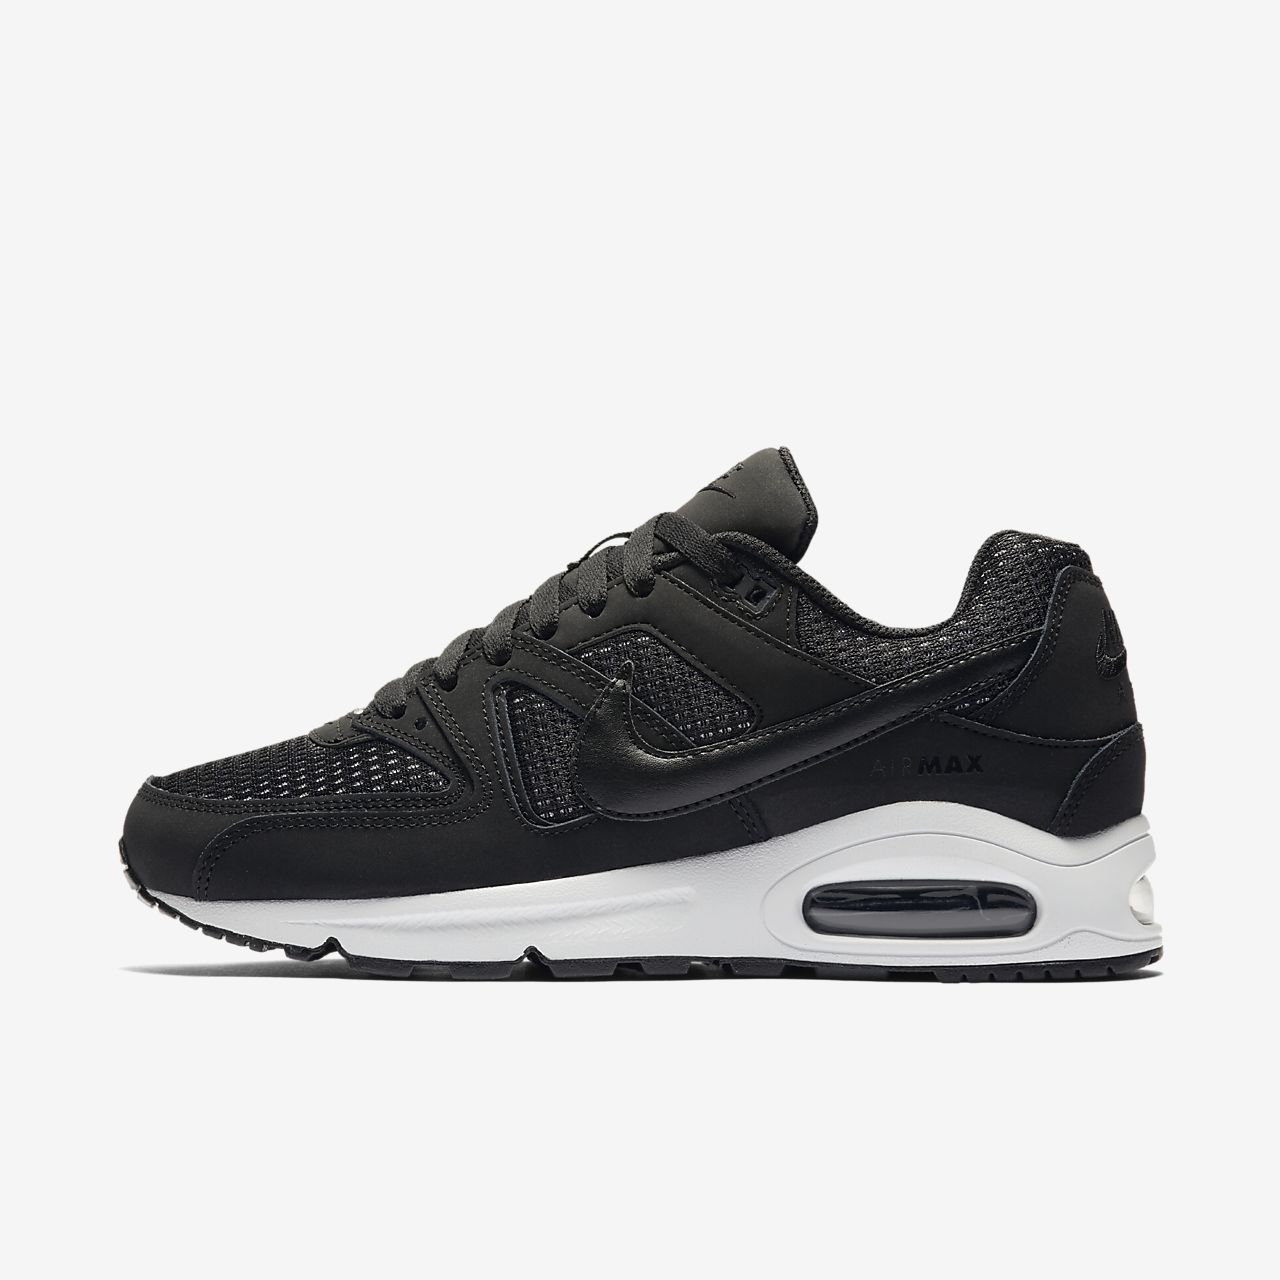 lowest price a92dd d0d3a ... Chaussure Nike Air Max Command pour Femme